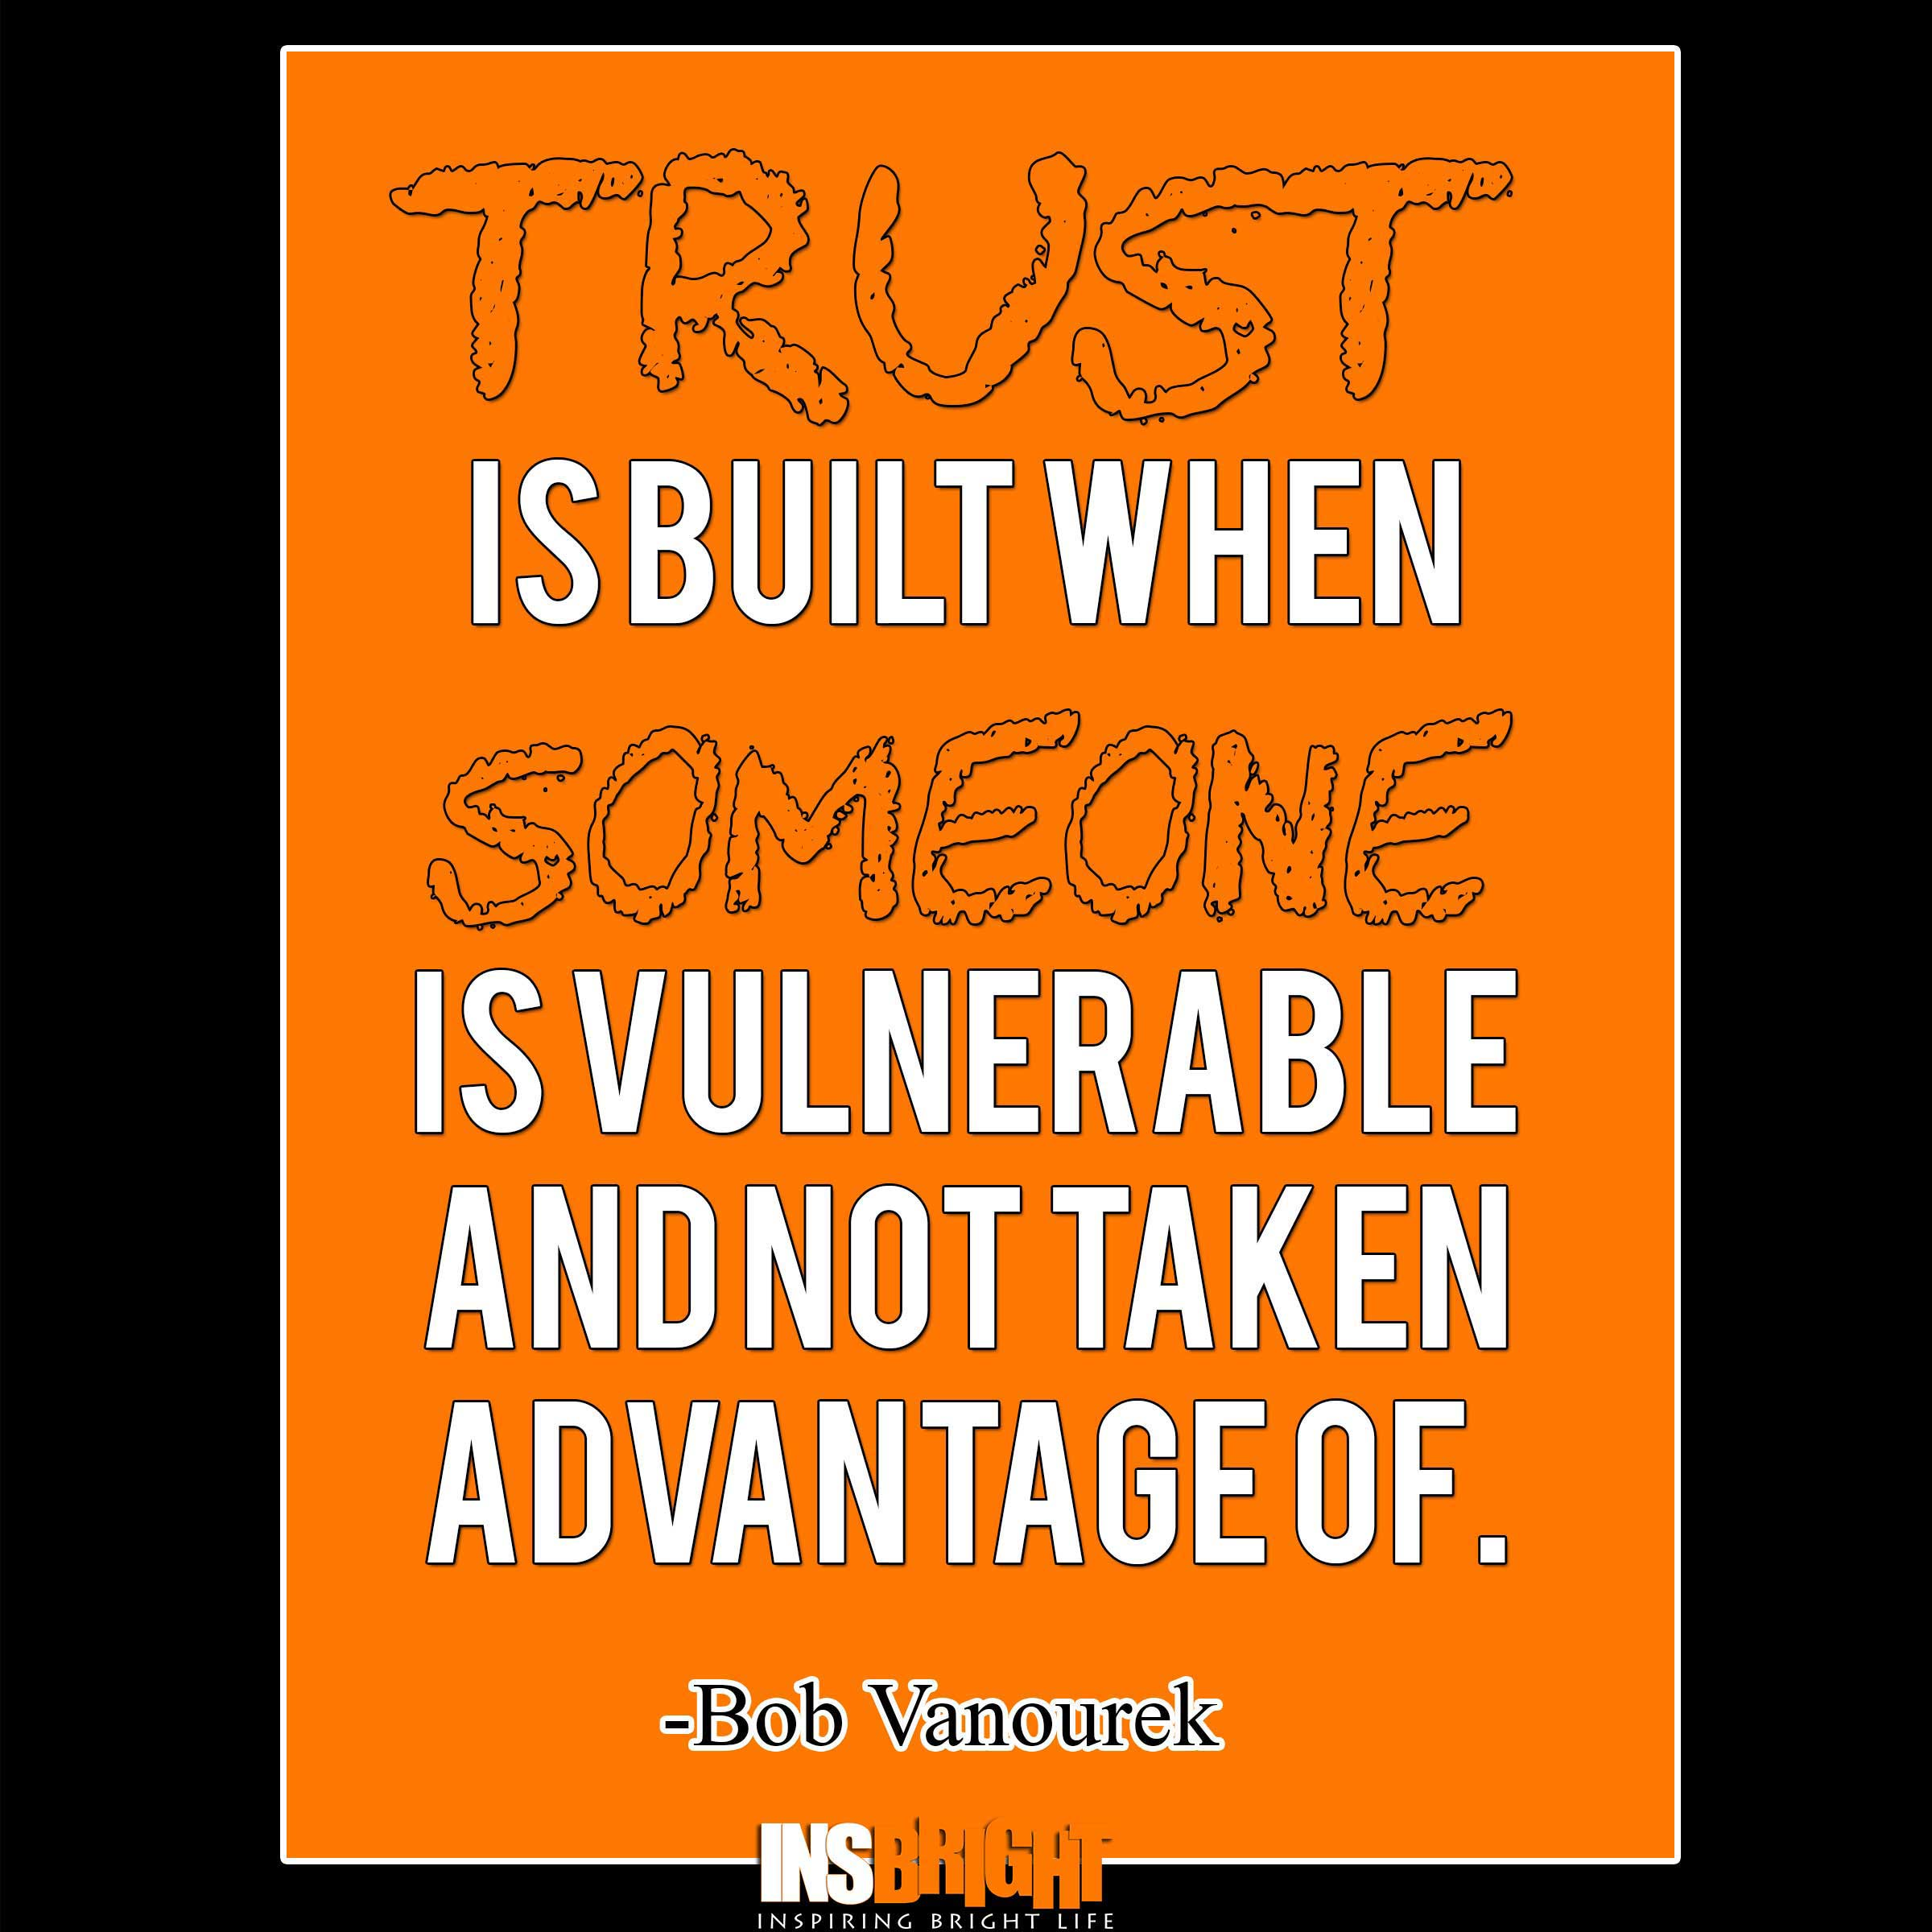 Trust Quotes 45 Inspirational Trust Quotes With Images  Insbright